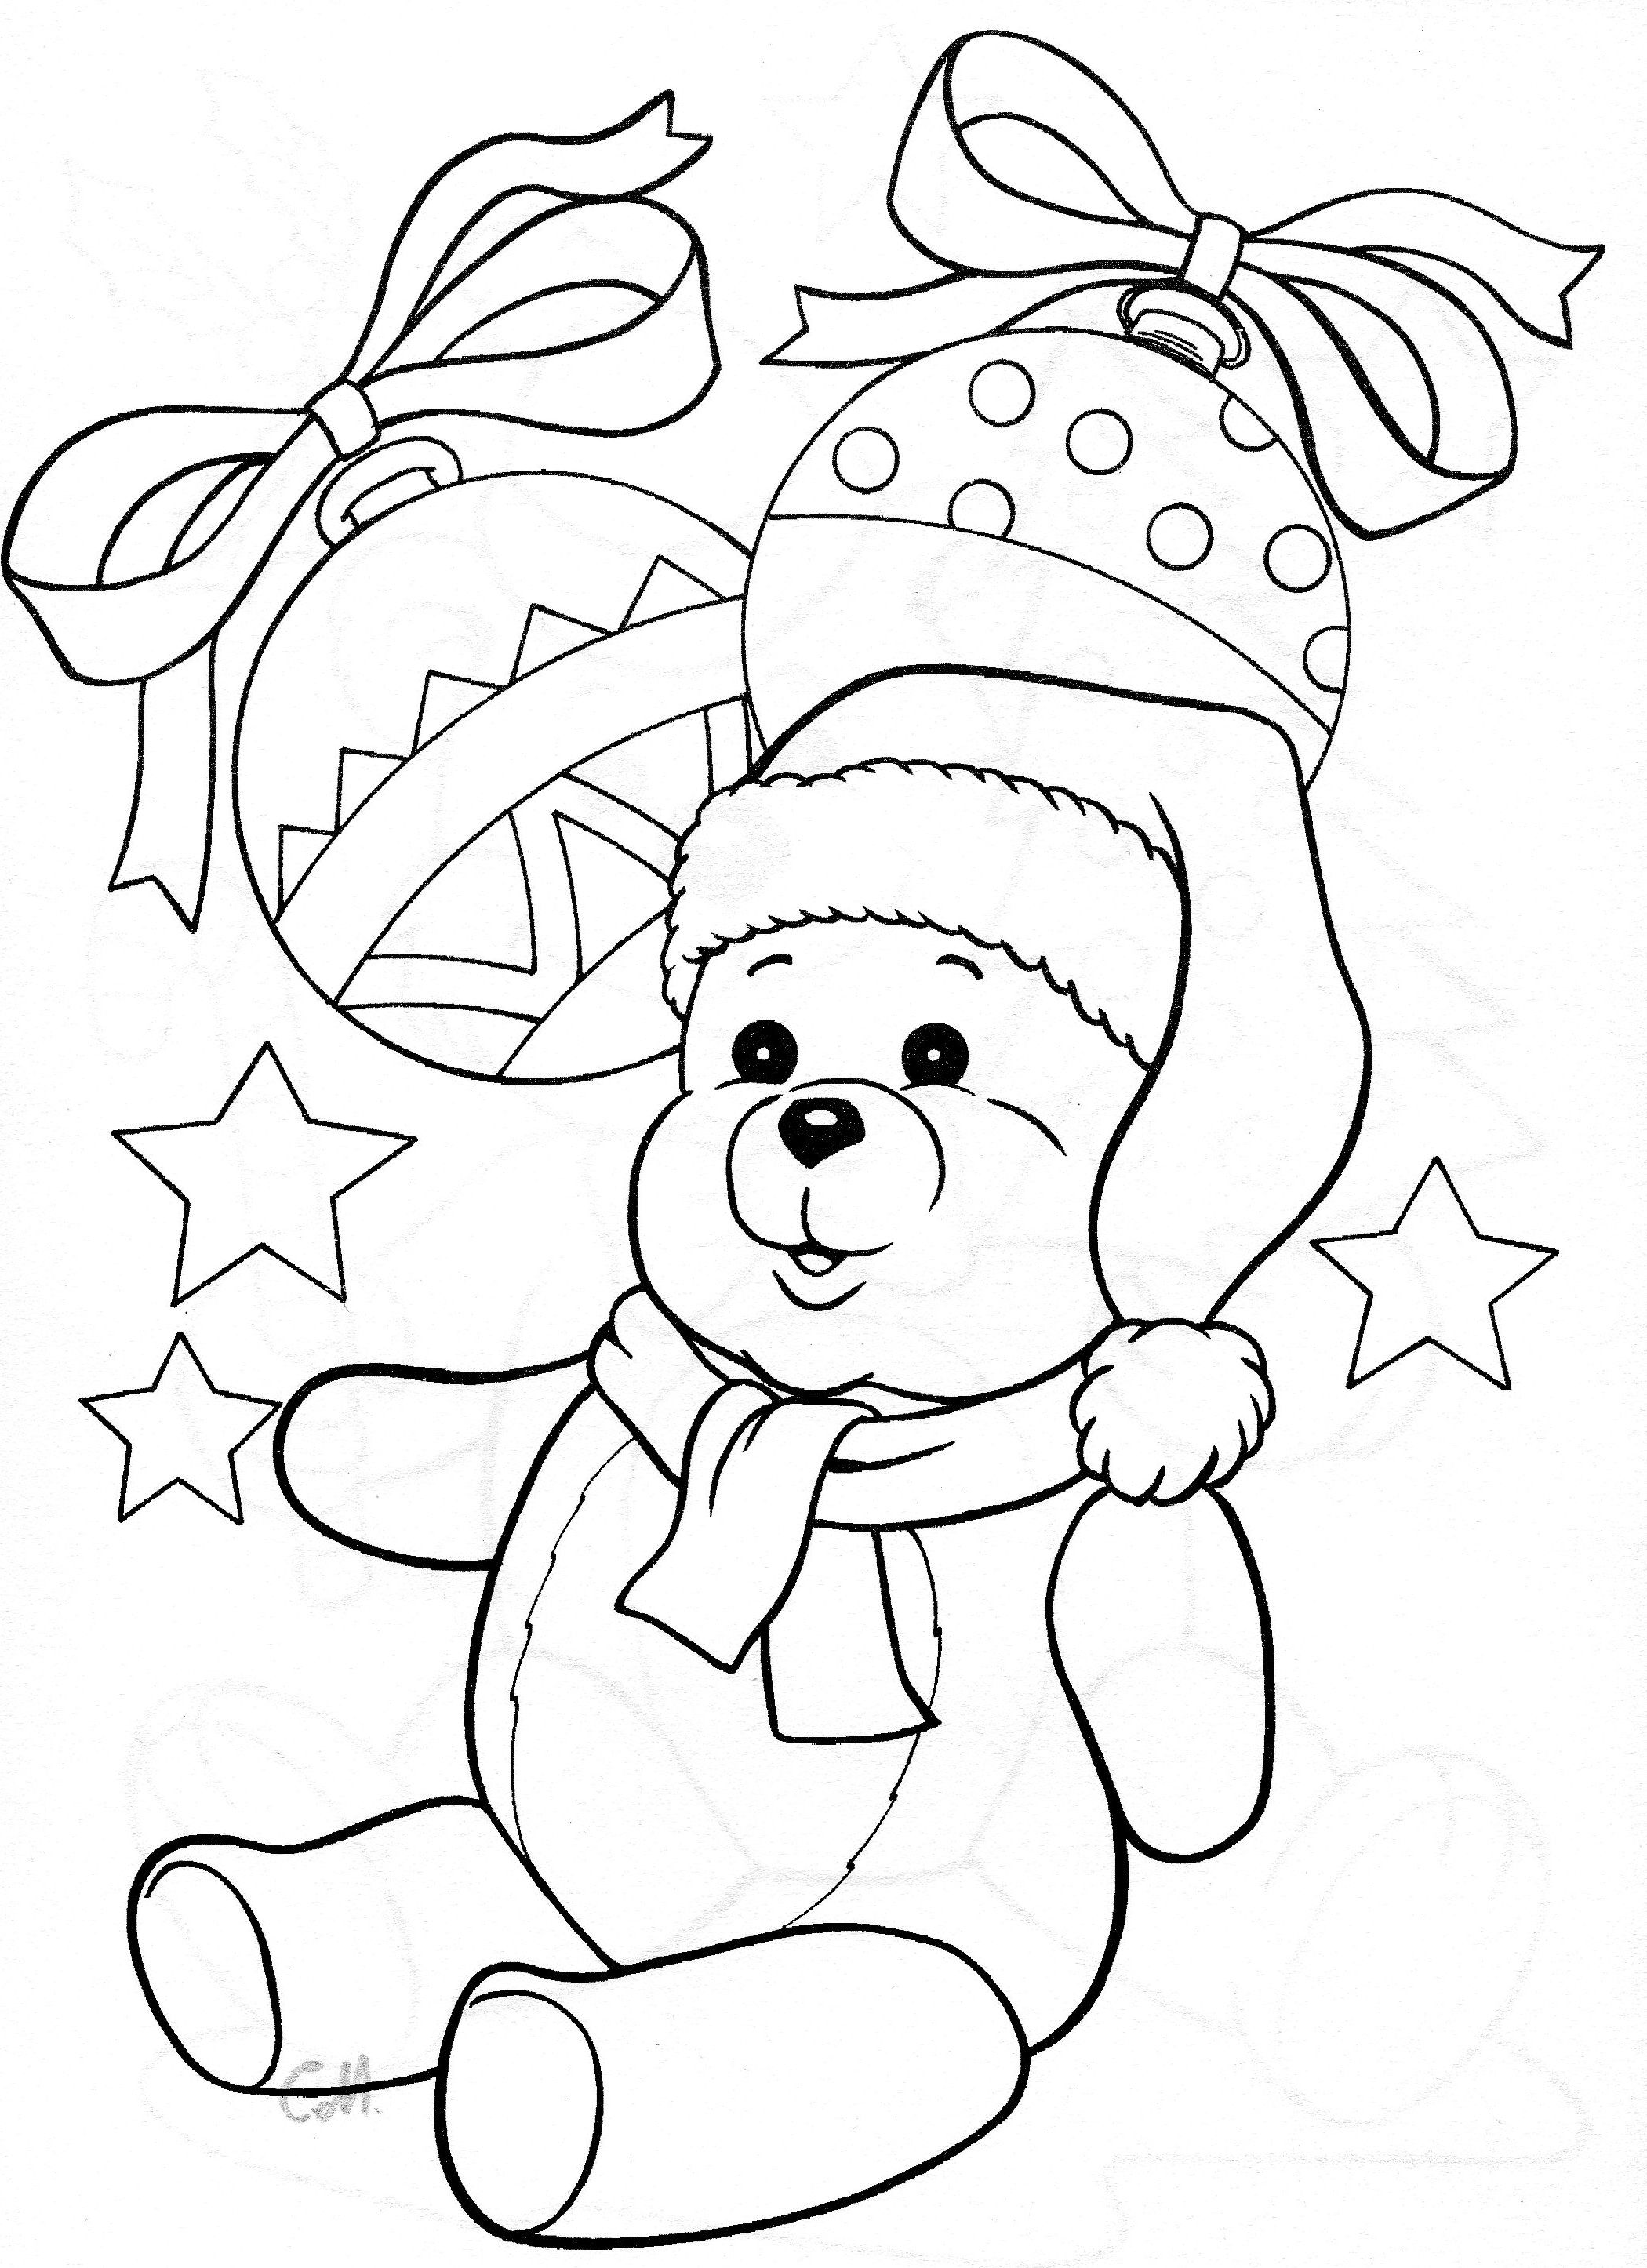 2100x2892 Christmas Embroidery Patterns Christmas Embroidery Patterns